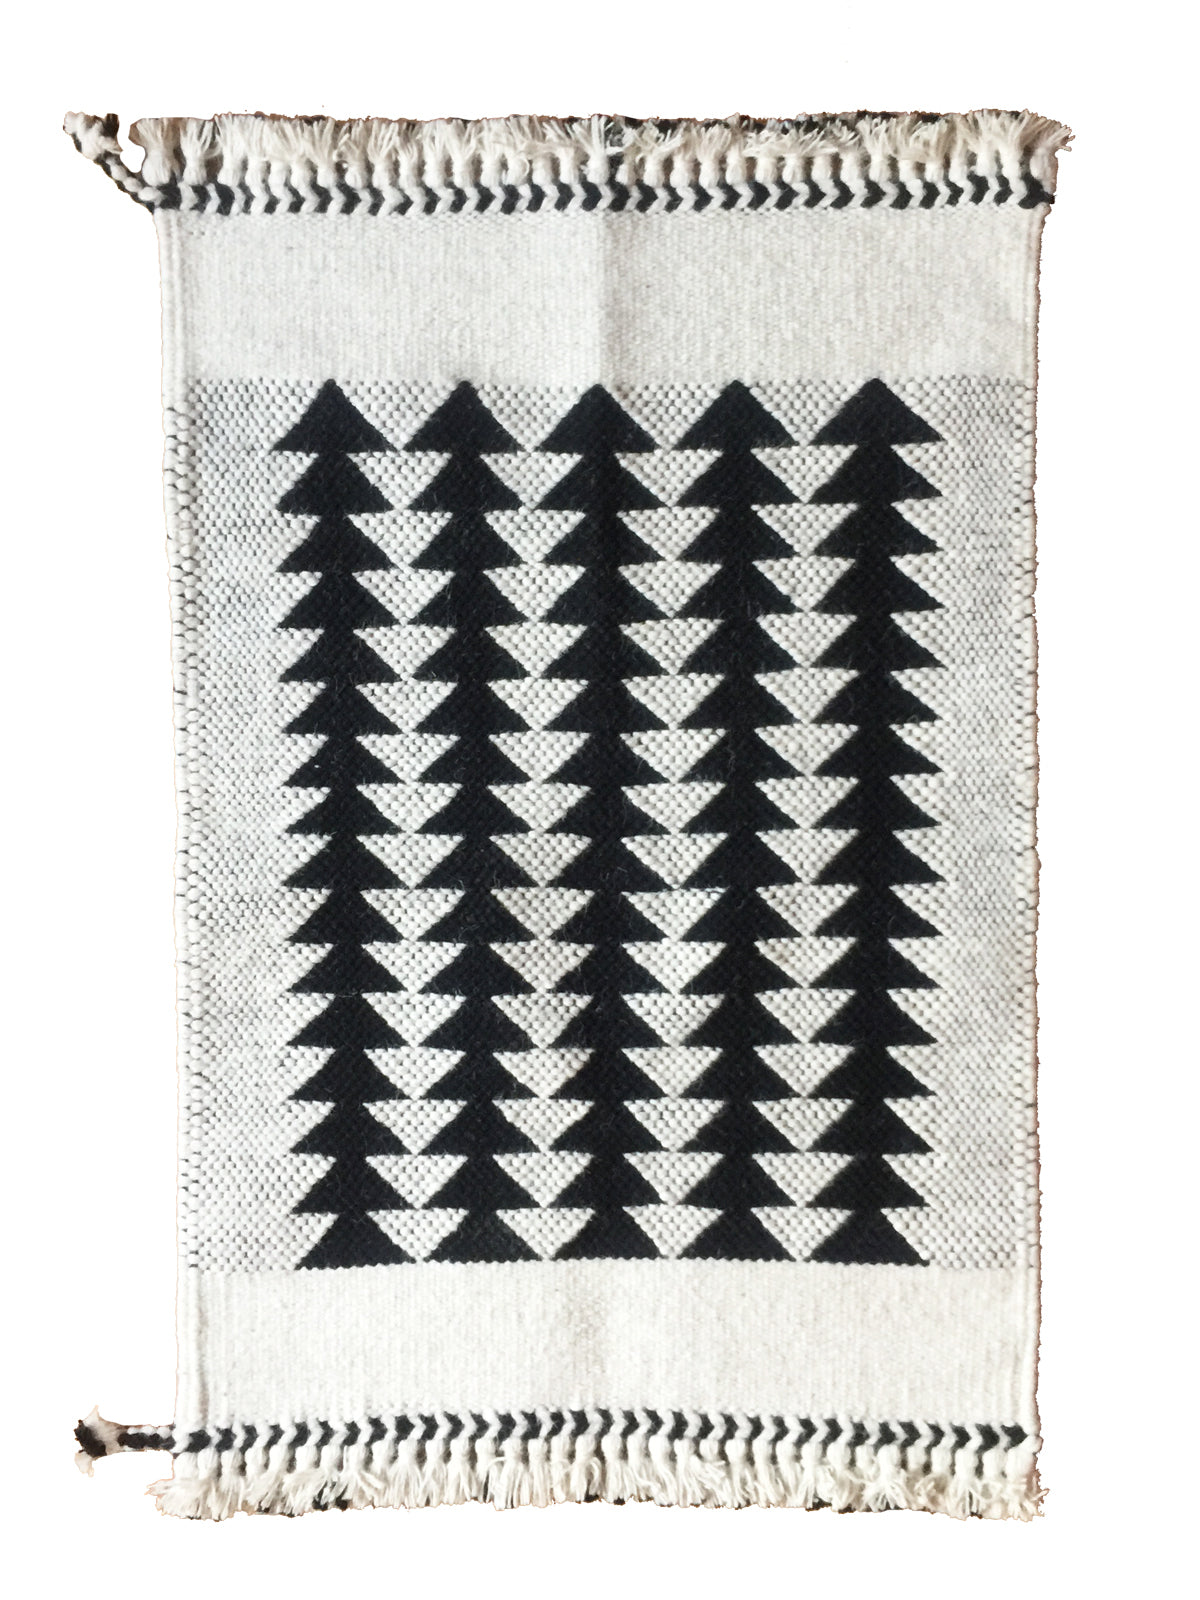 Our bestselling black and white Arrows 2x3' wool rug, handwoven with 100% undyed wool. Black and white wall hanging and area rug.